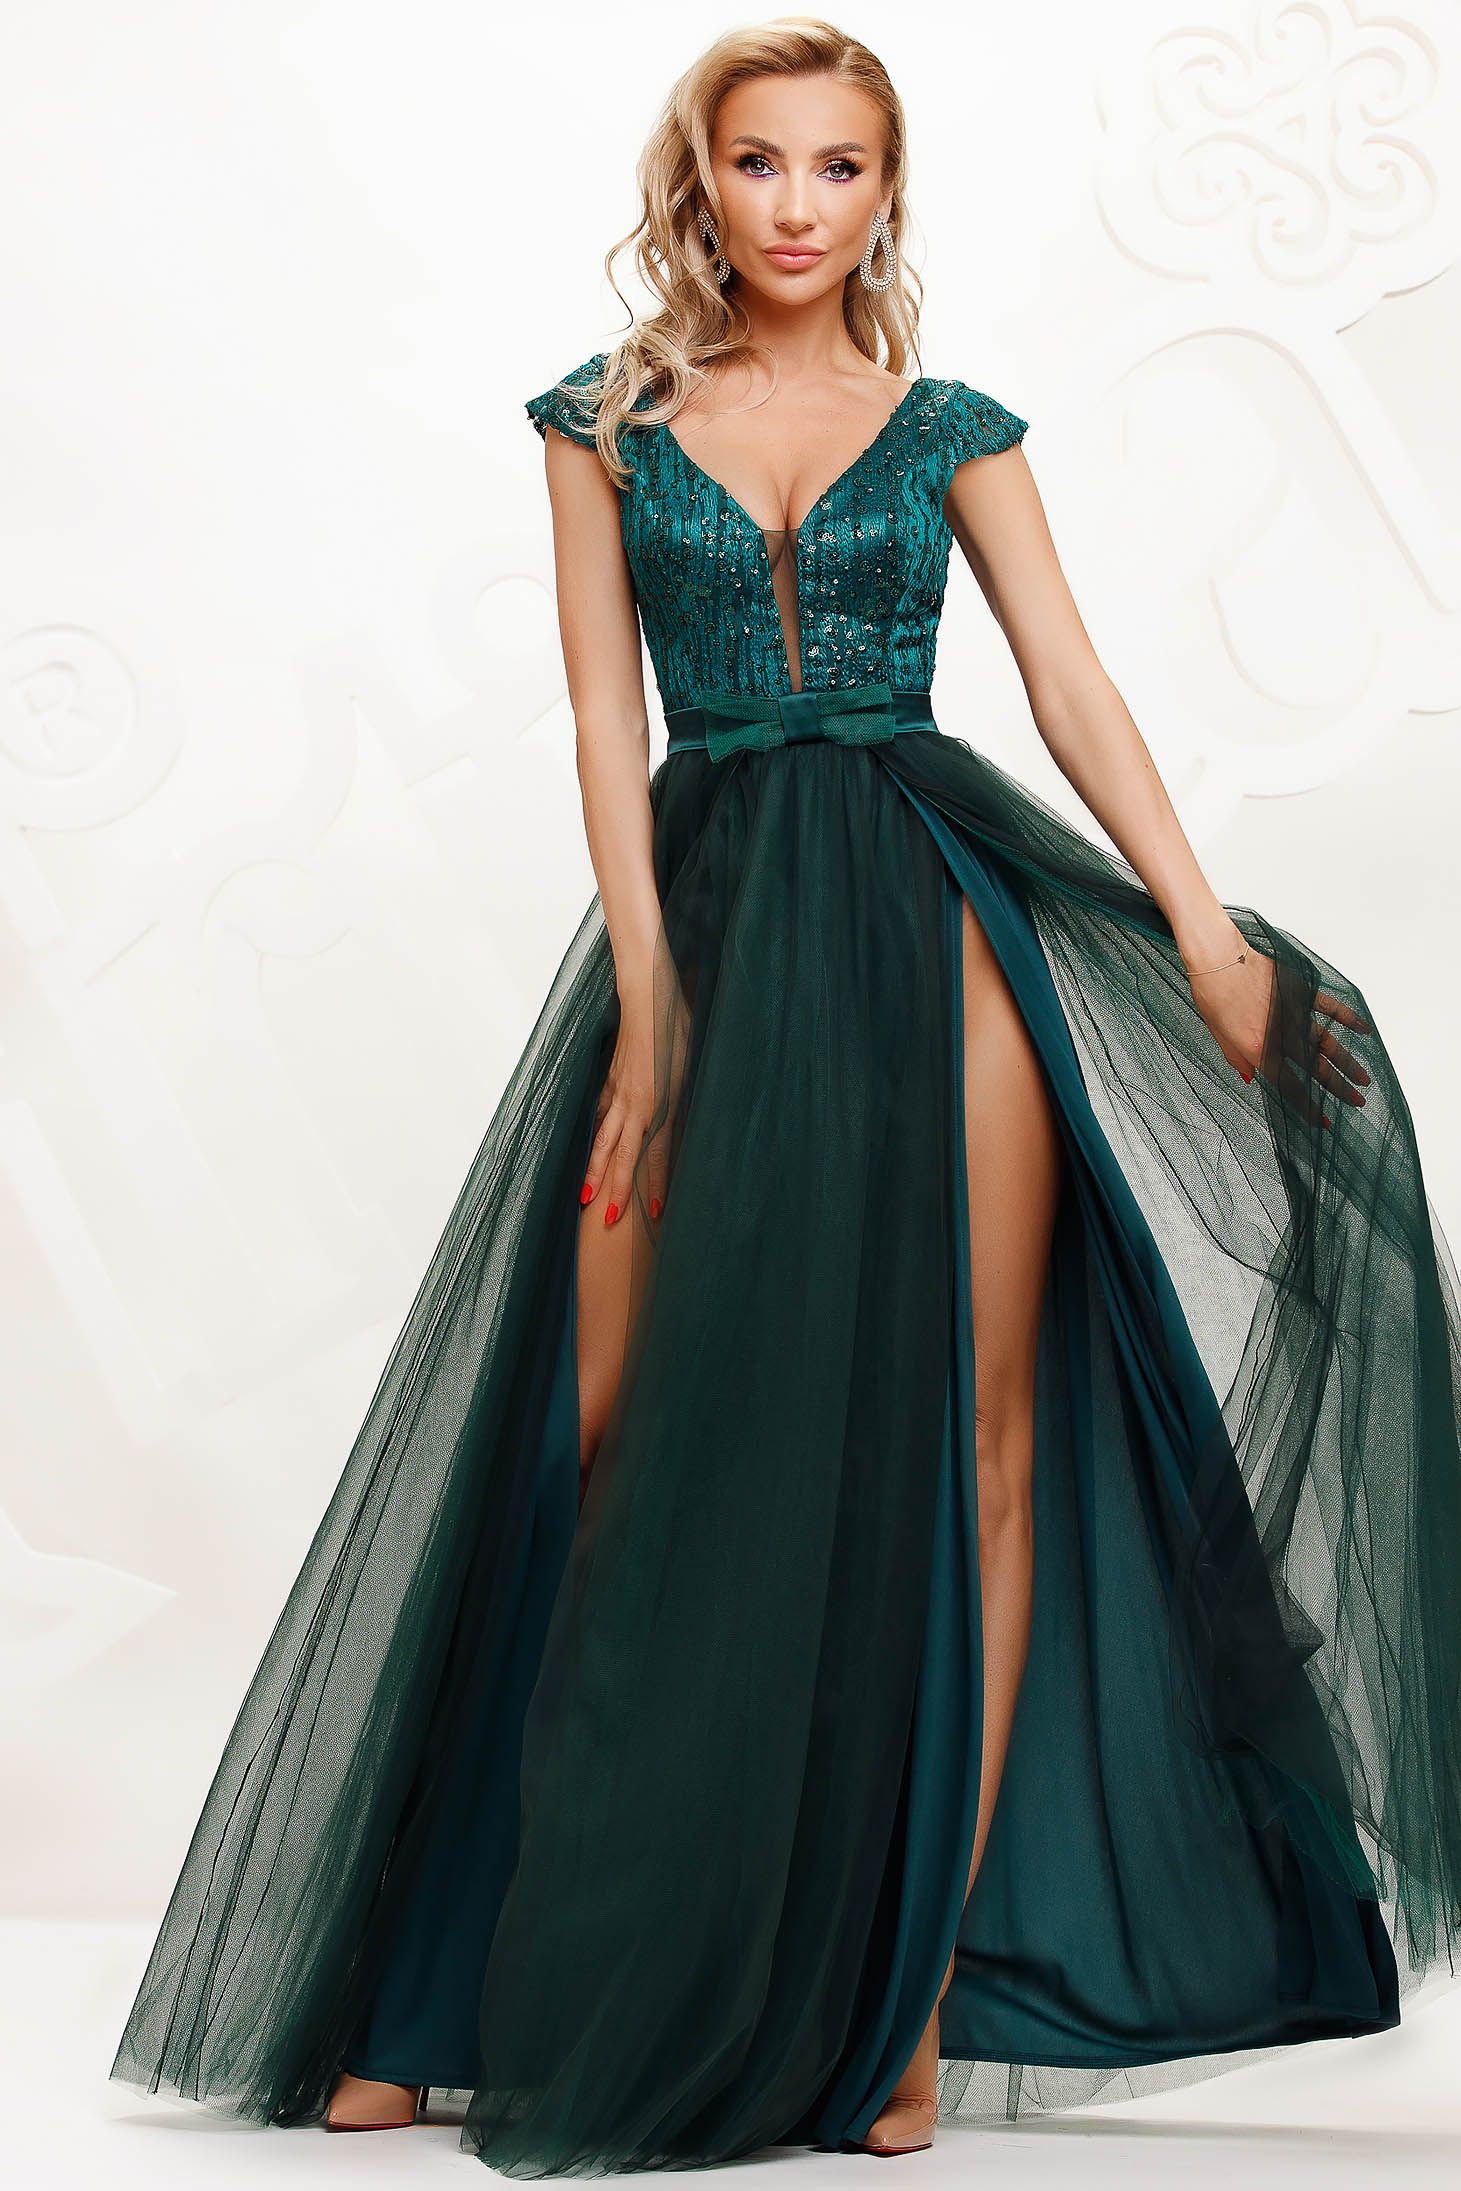 Darkgreen dress from tulle cloche occasional slit with sequin embellished details